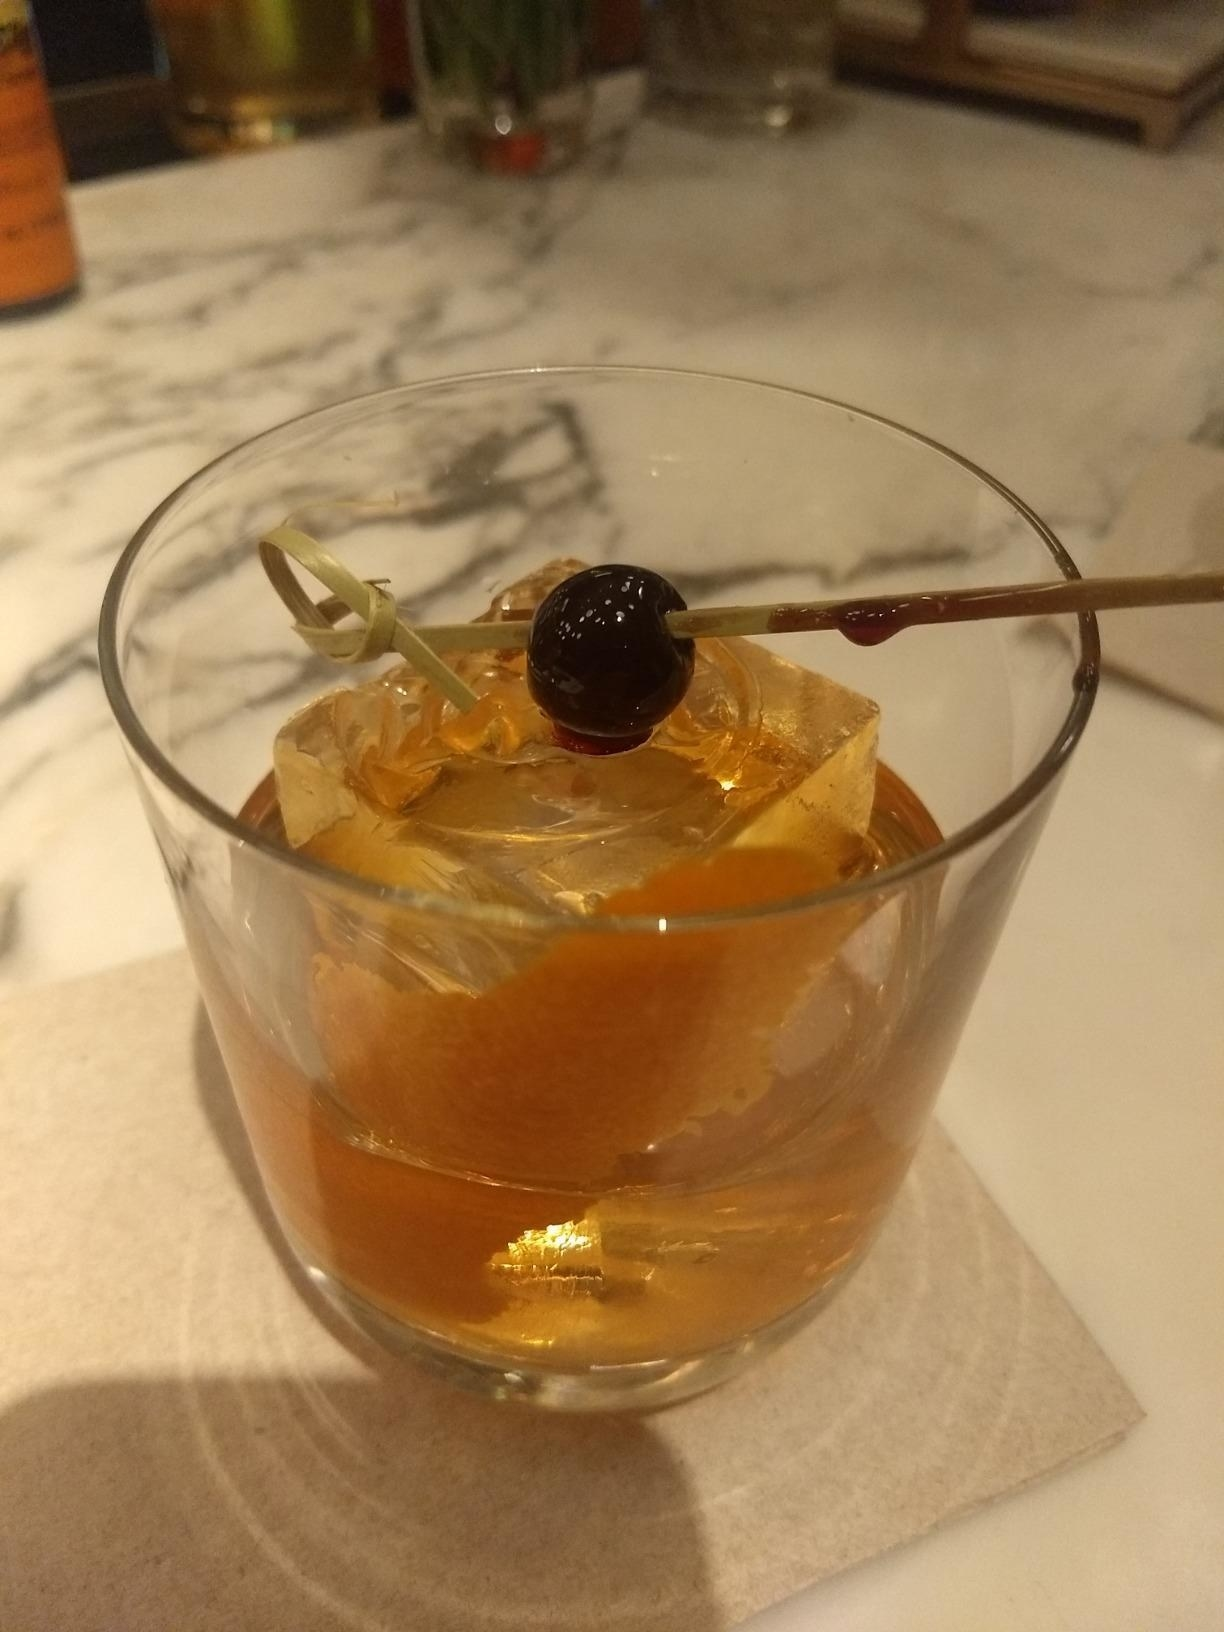 An Old-Fashioned whiskey cocktail with a jumbo ice cube inside of the glass.